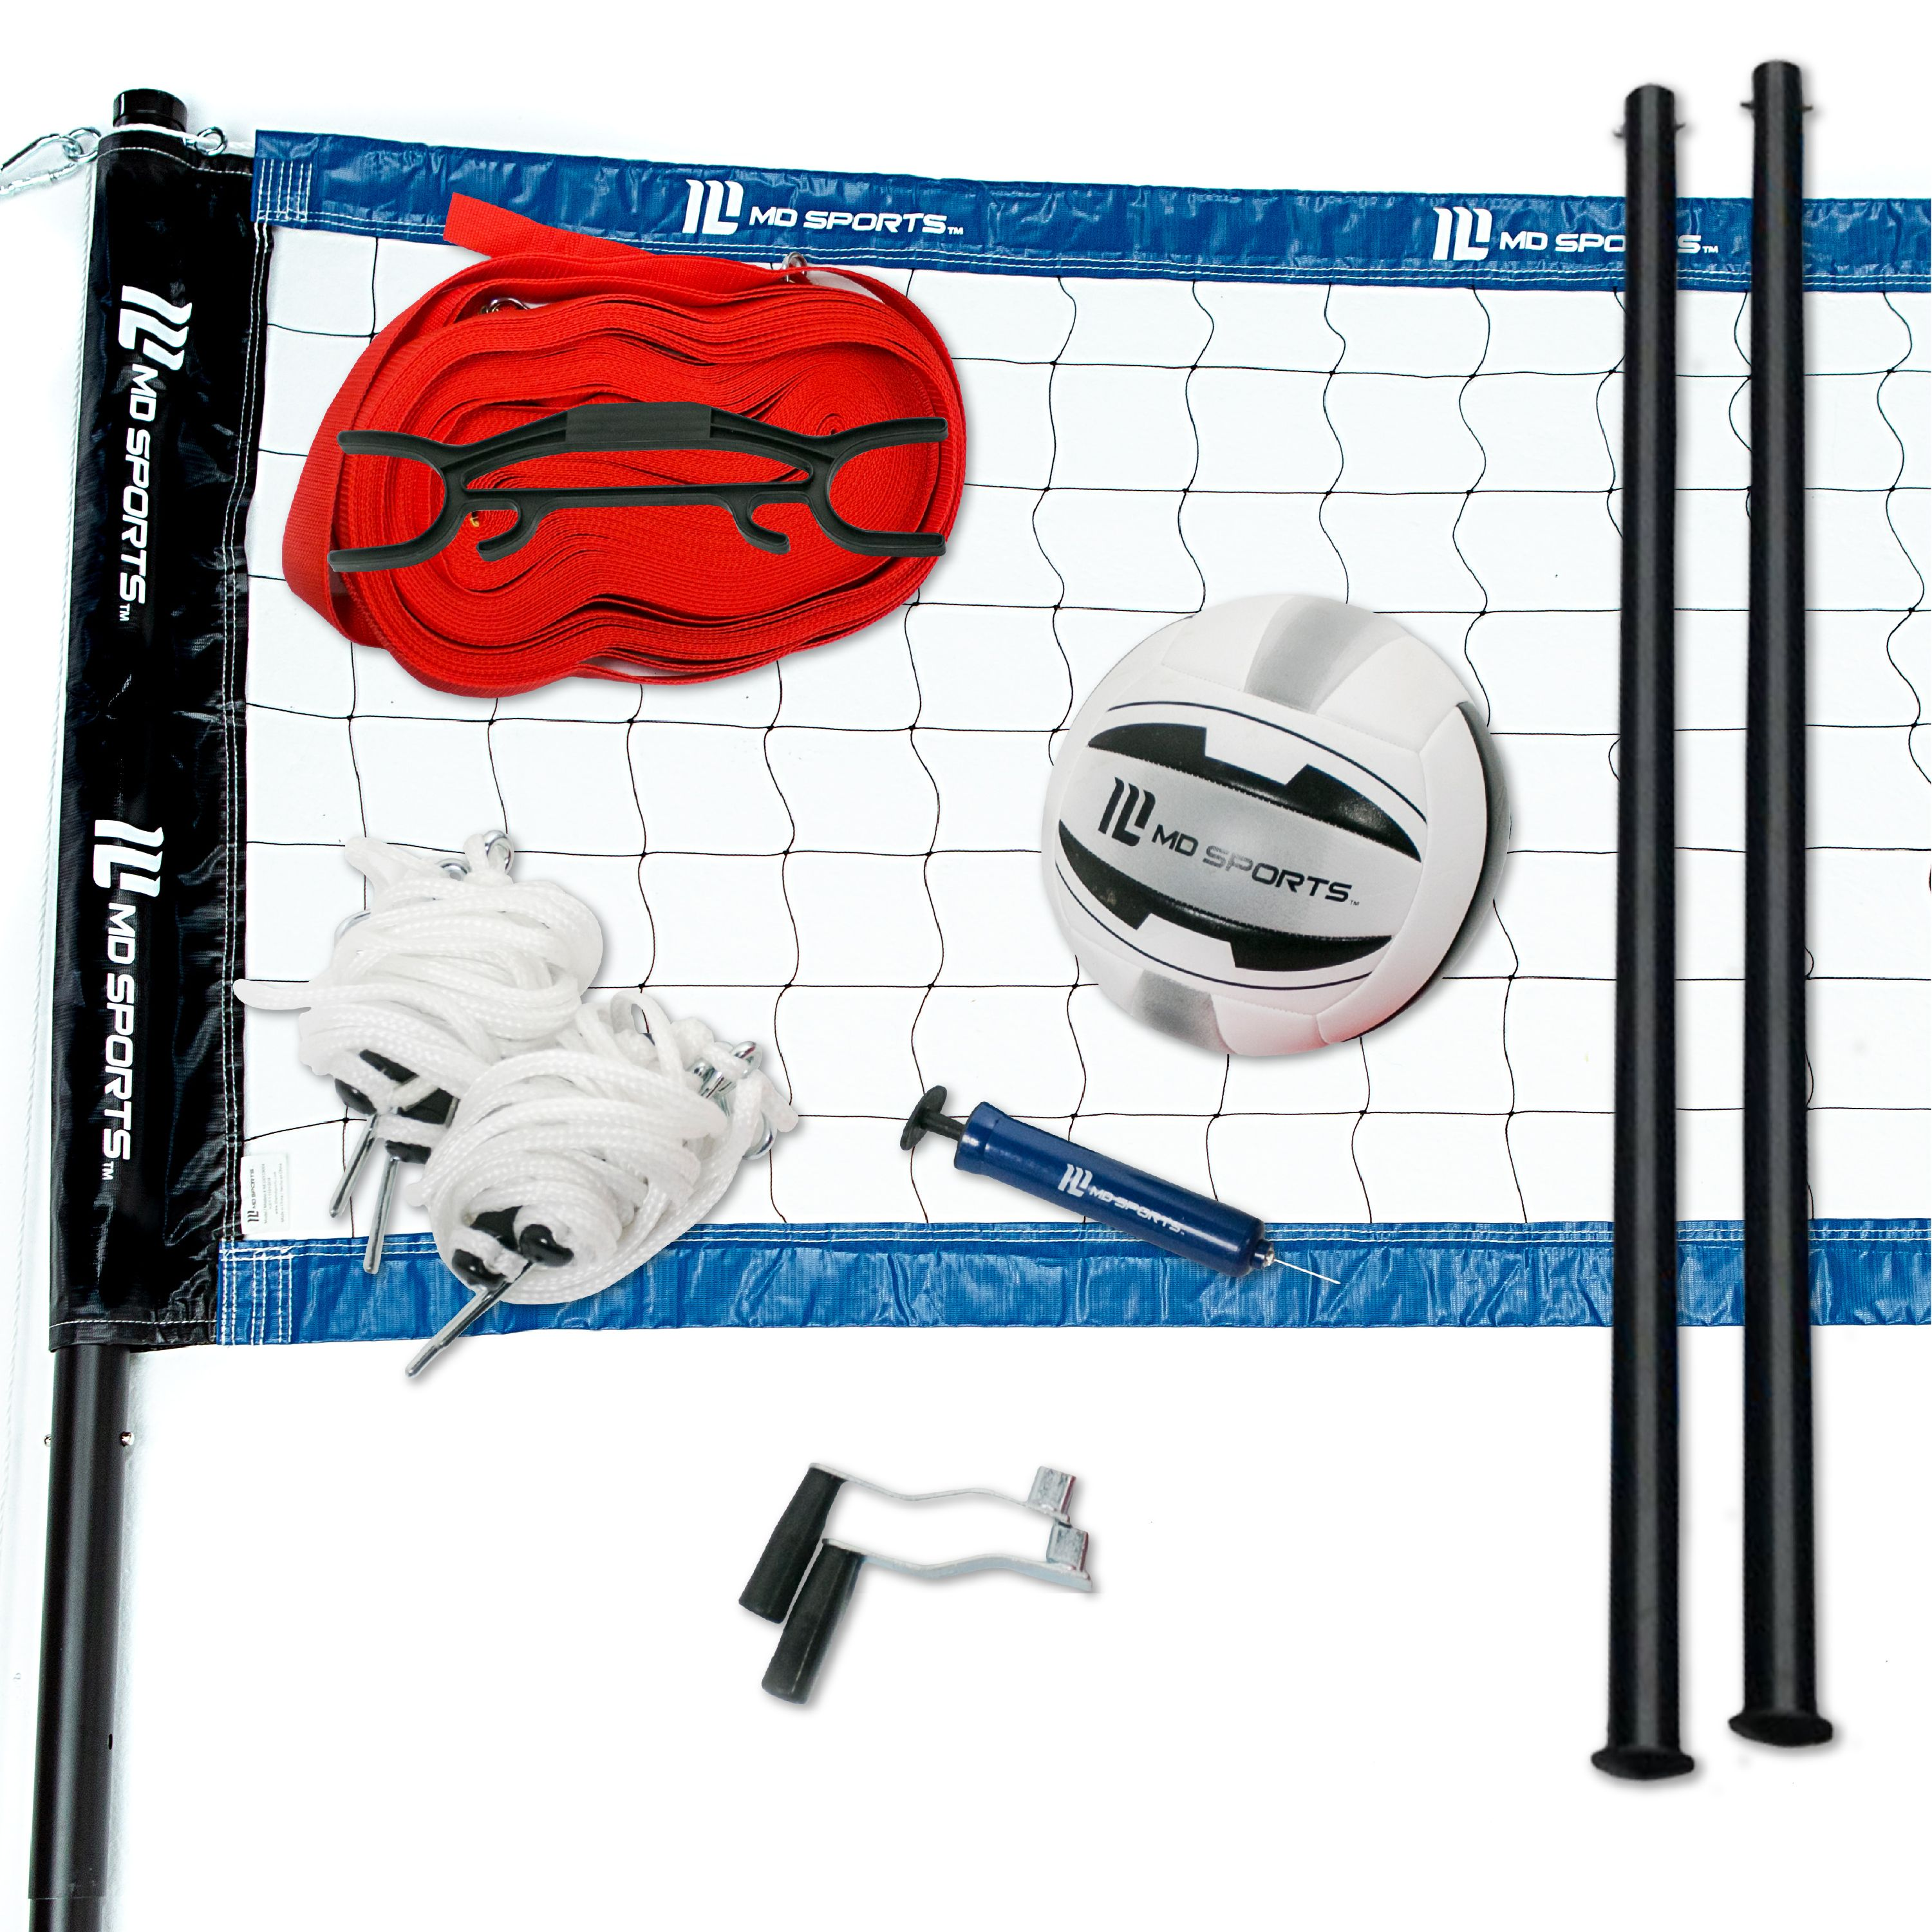 Md Sports Regulation Size Professional Volleyball Set Ad Regulation Affiliate Sports Md In 2020 Volleyball Set Professional Volleyball Volleyball Net Set